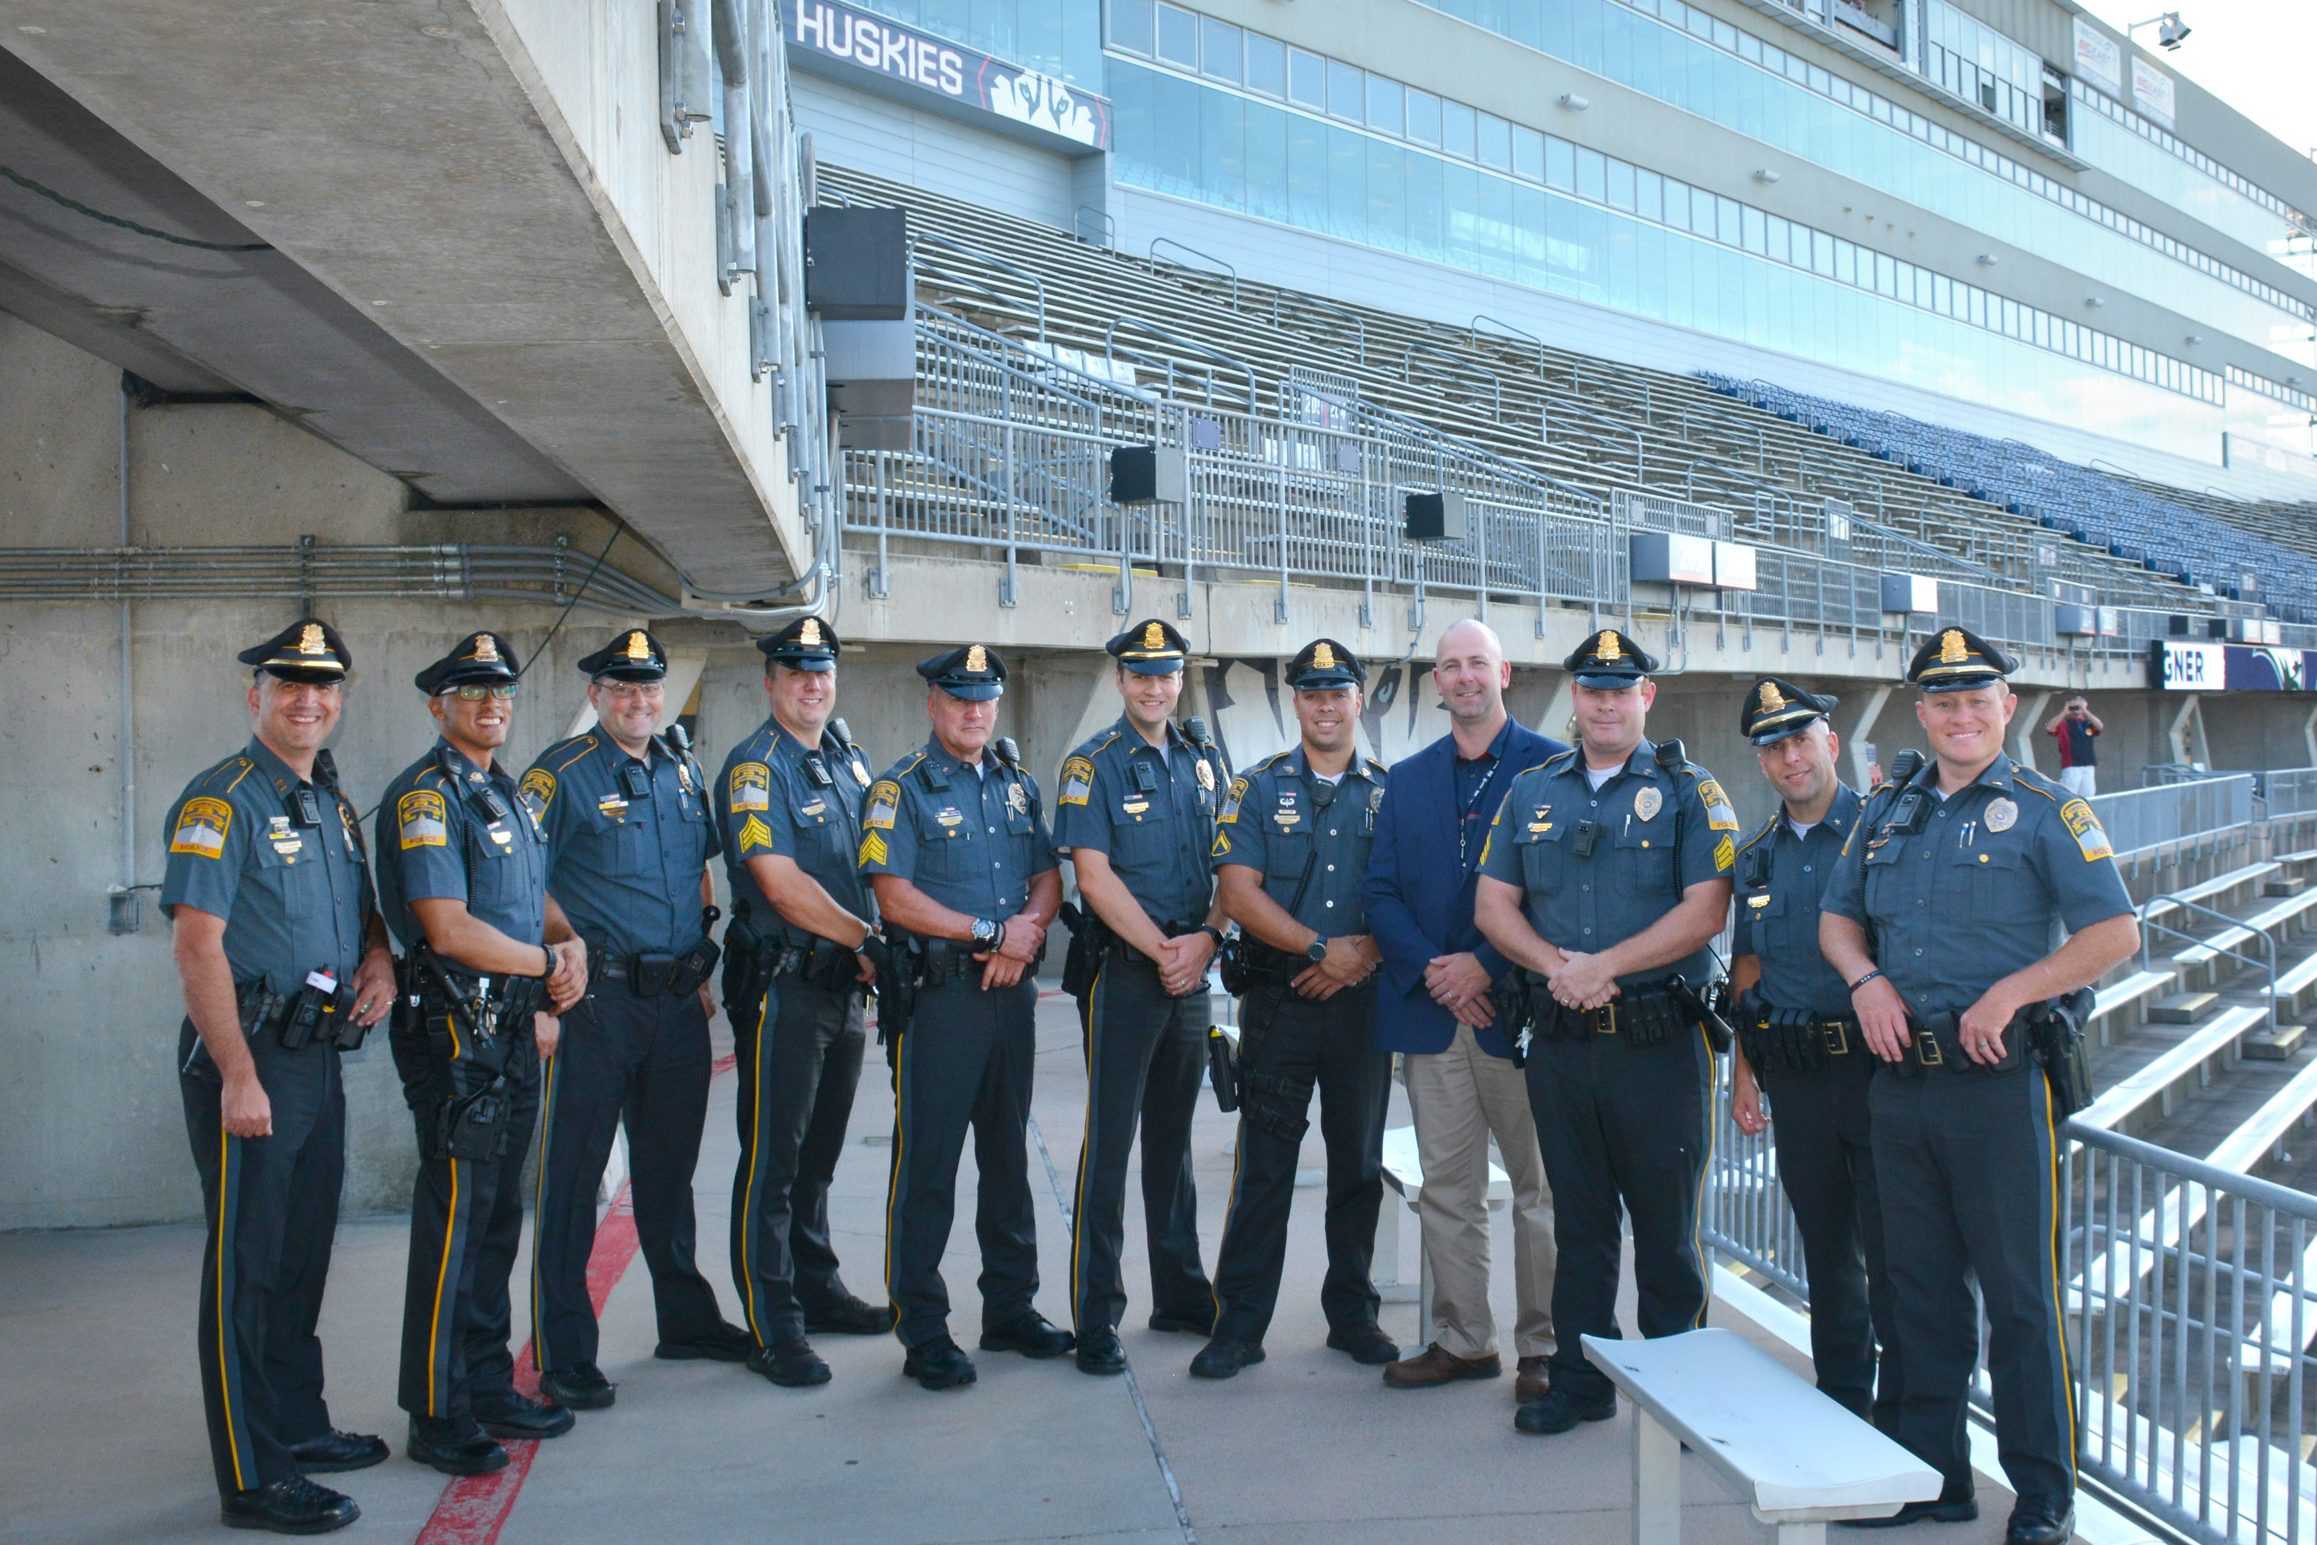 From left to right, Chief Hans D. Rhynhart '93 and '18; Officer Alex Rodriguez '14; Sgt. Peter Harris '03; Sgt. Justin Cheney '07; Sgt. Marc Hanna '88; Lt. Matthew C. Zadrowski '07; Officer Tyler Hopson '13; Lt. Darren Cook '94; Sgt. Mark Bouthillier '07; Deputy Chief Andrew Fournier '95 '01; Lt. Justin Gilbert '06. UConn grads not pictured: Officer Robin Kiddy; Sgt. Zachary Ladyga; Officer Joseph Conetta. (Submitted Photo)